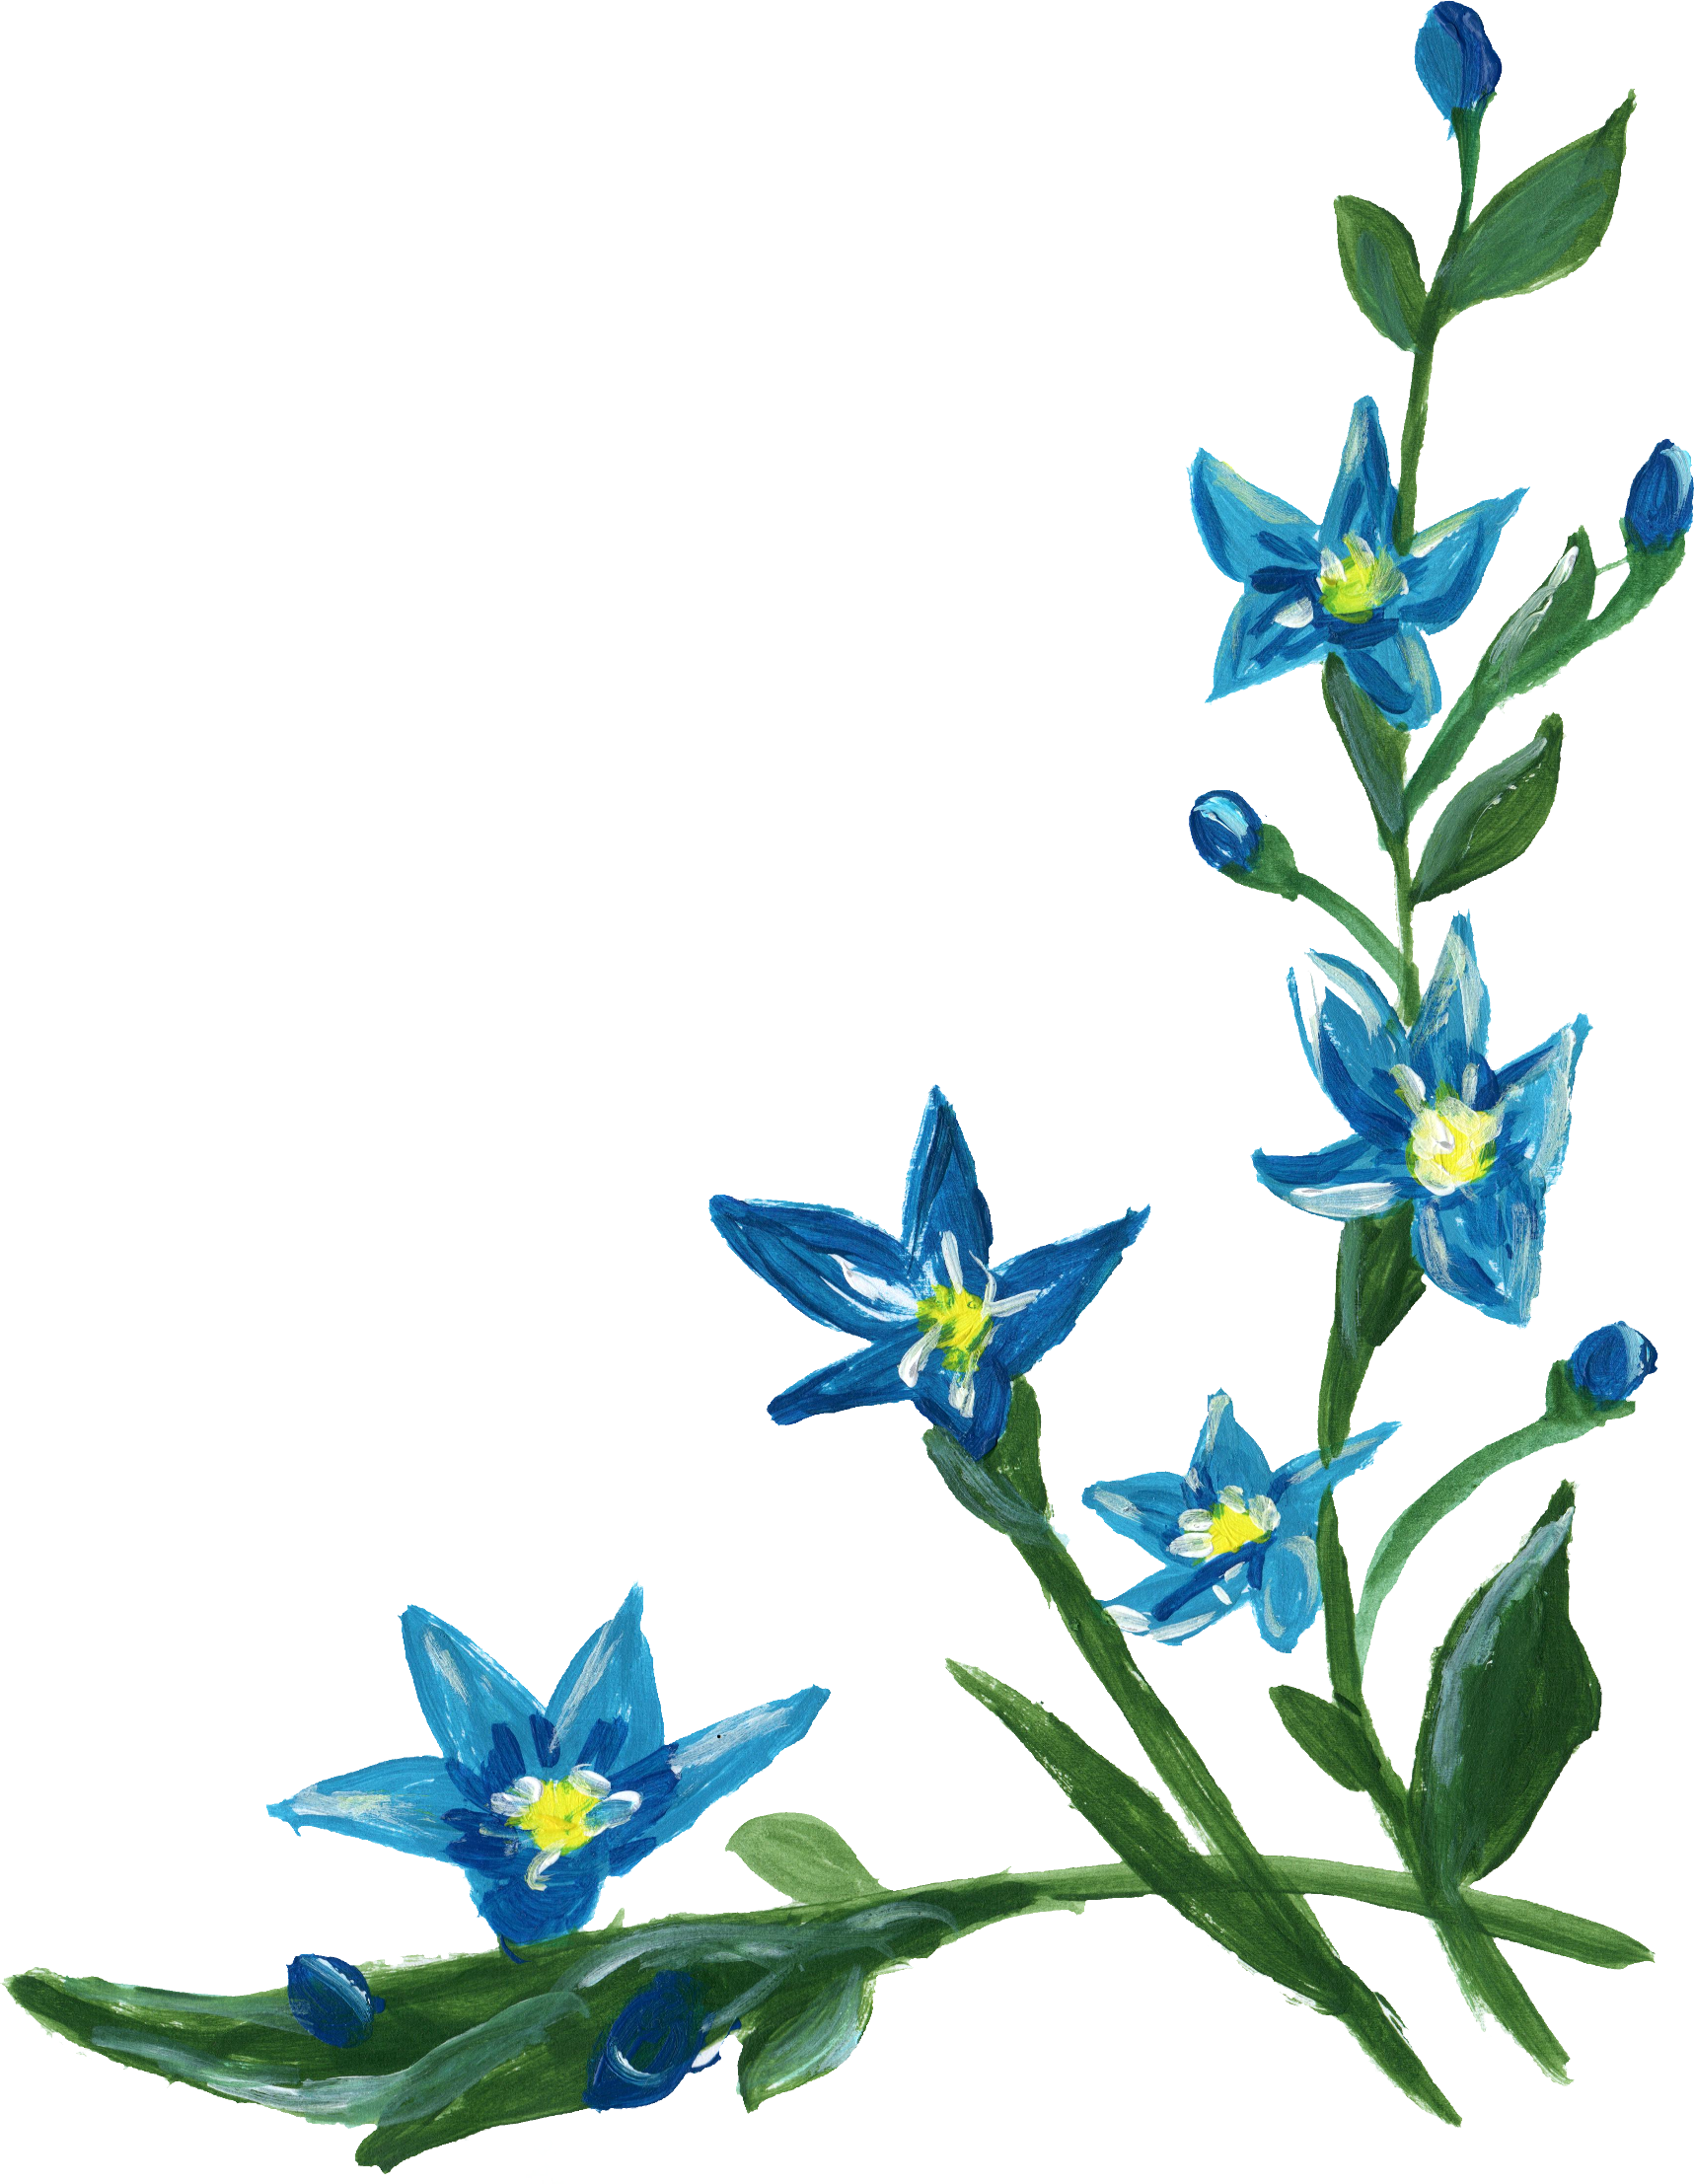 Blue flower border clipart jpg library library Flower Clip art - blue flower border 1717*2214 transprent Png Free ... jpg library library